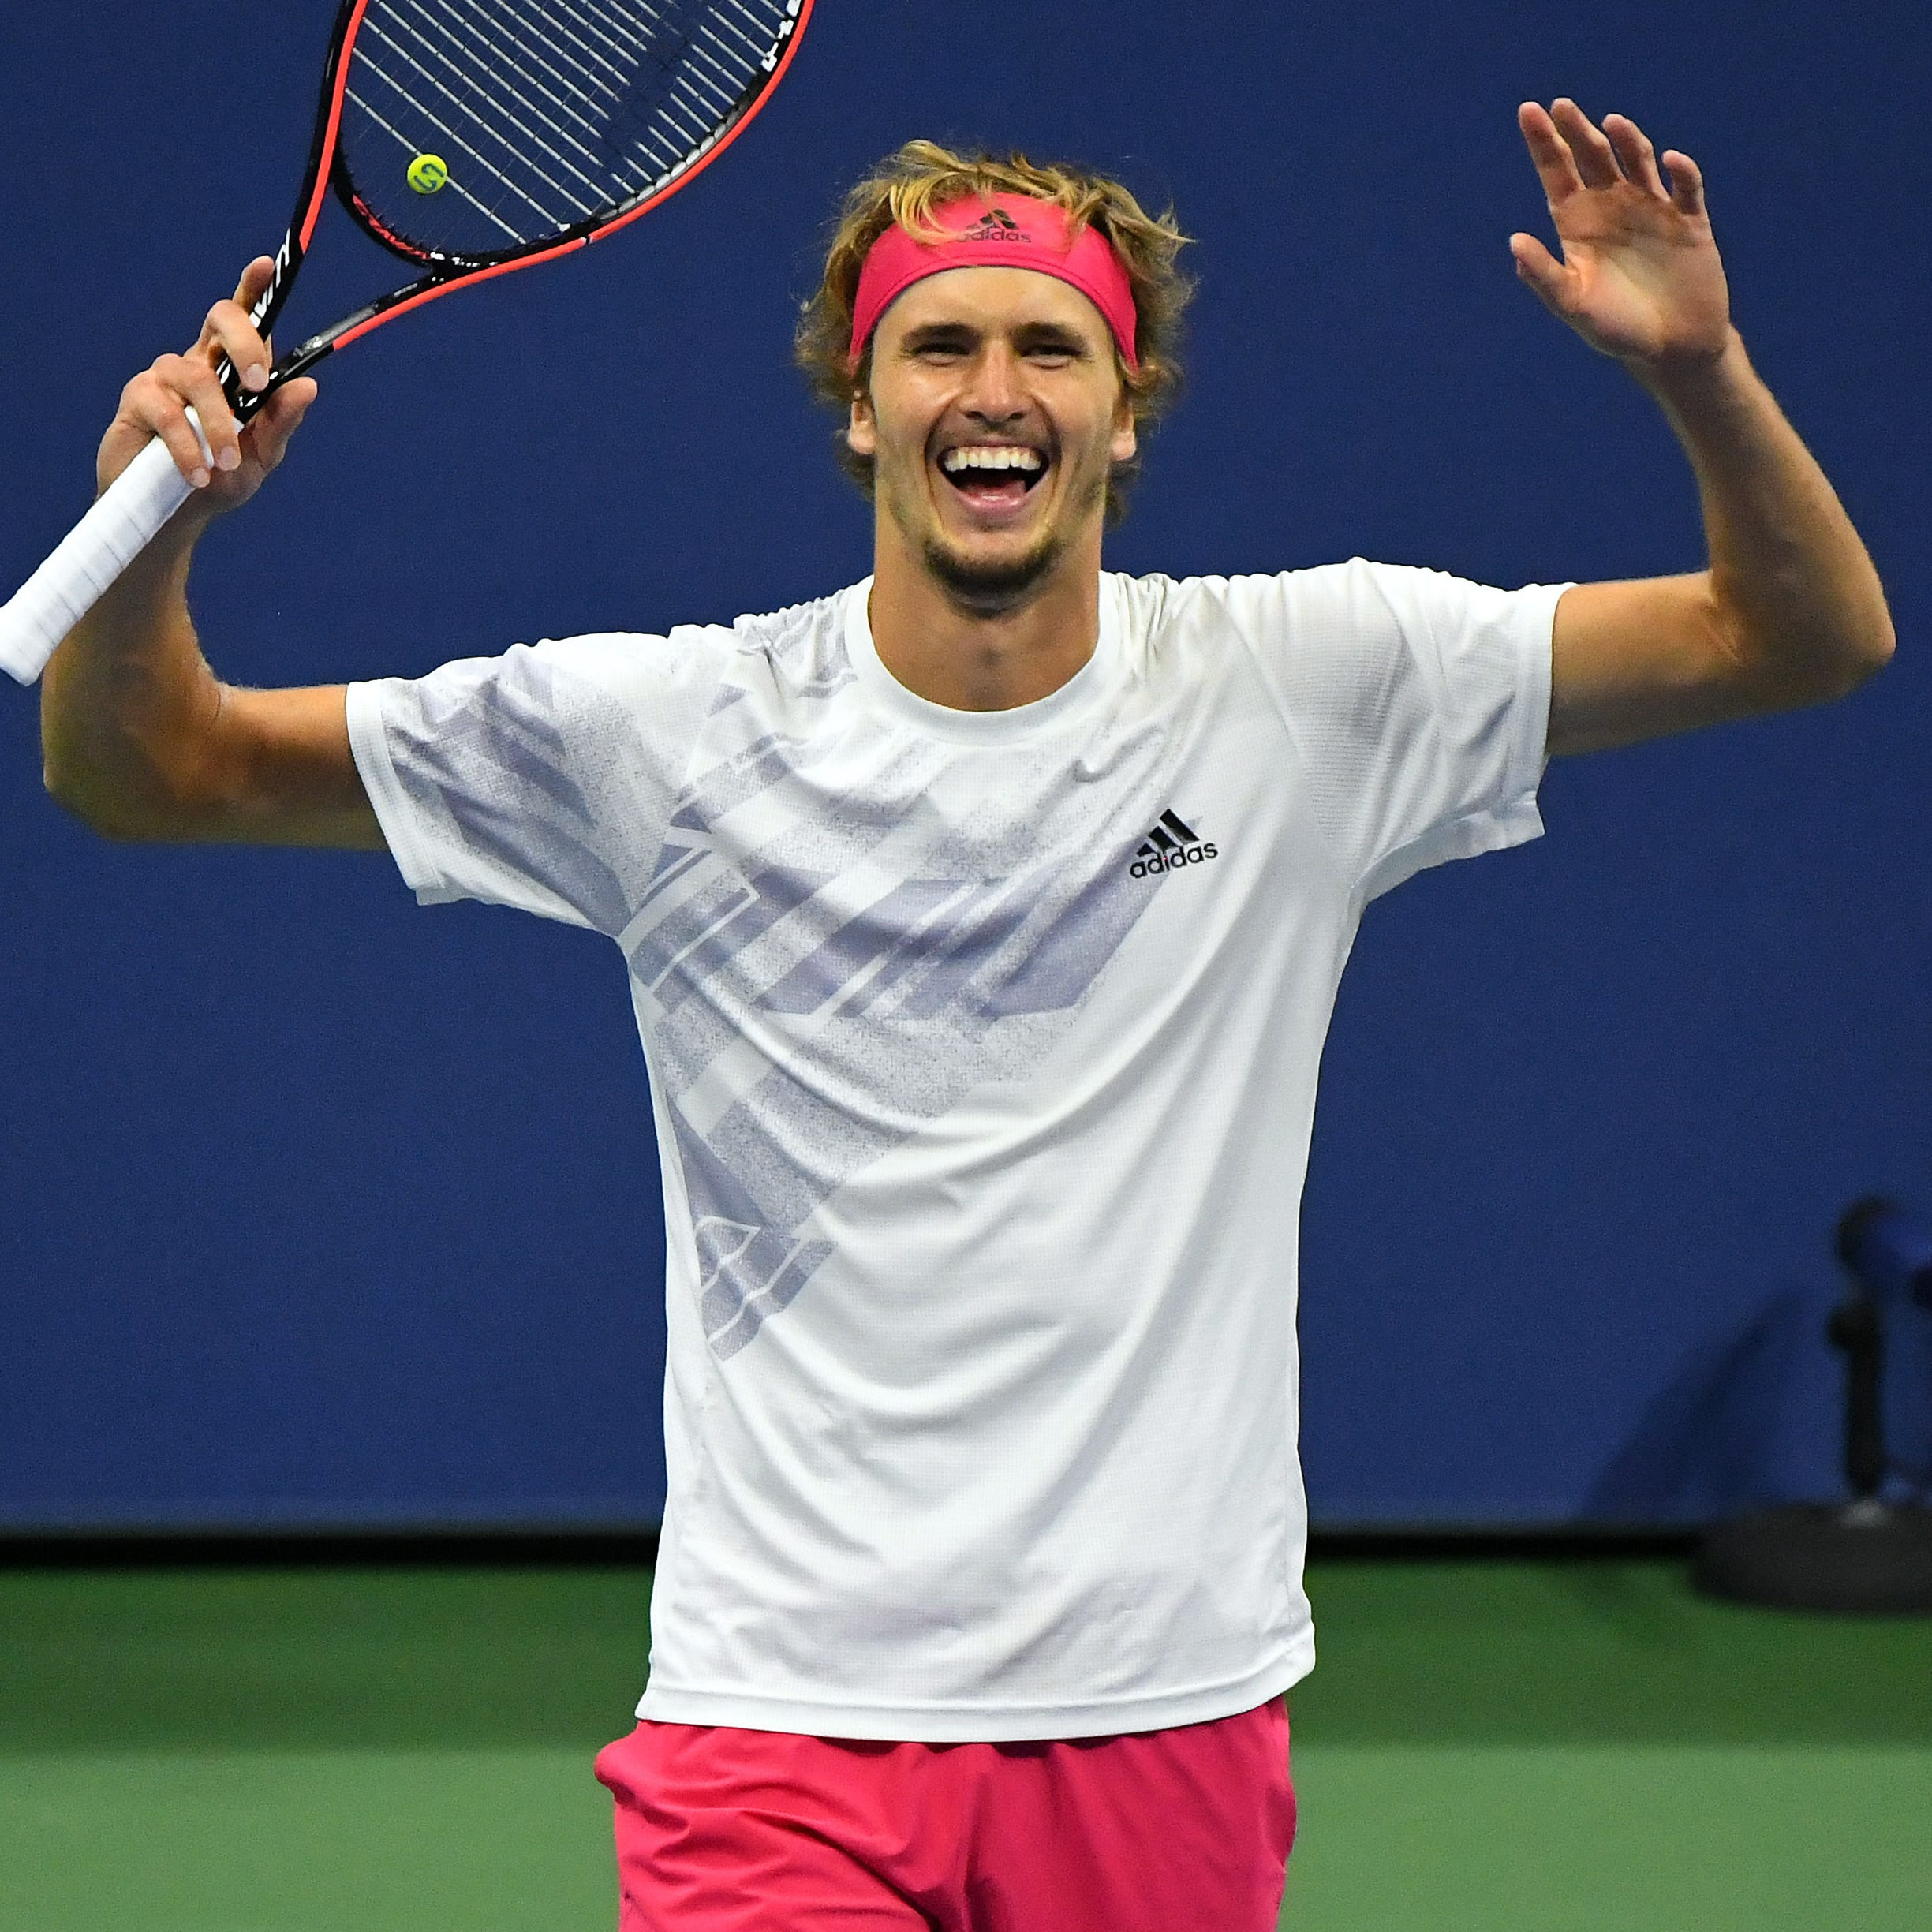 Us Open Men S Final The Beginning Of The End For Tennis Big 3